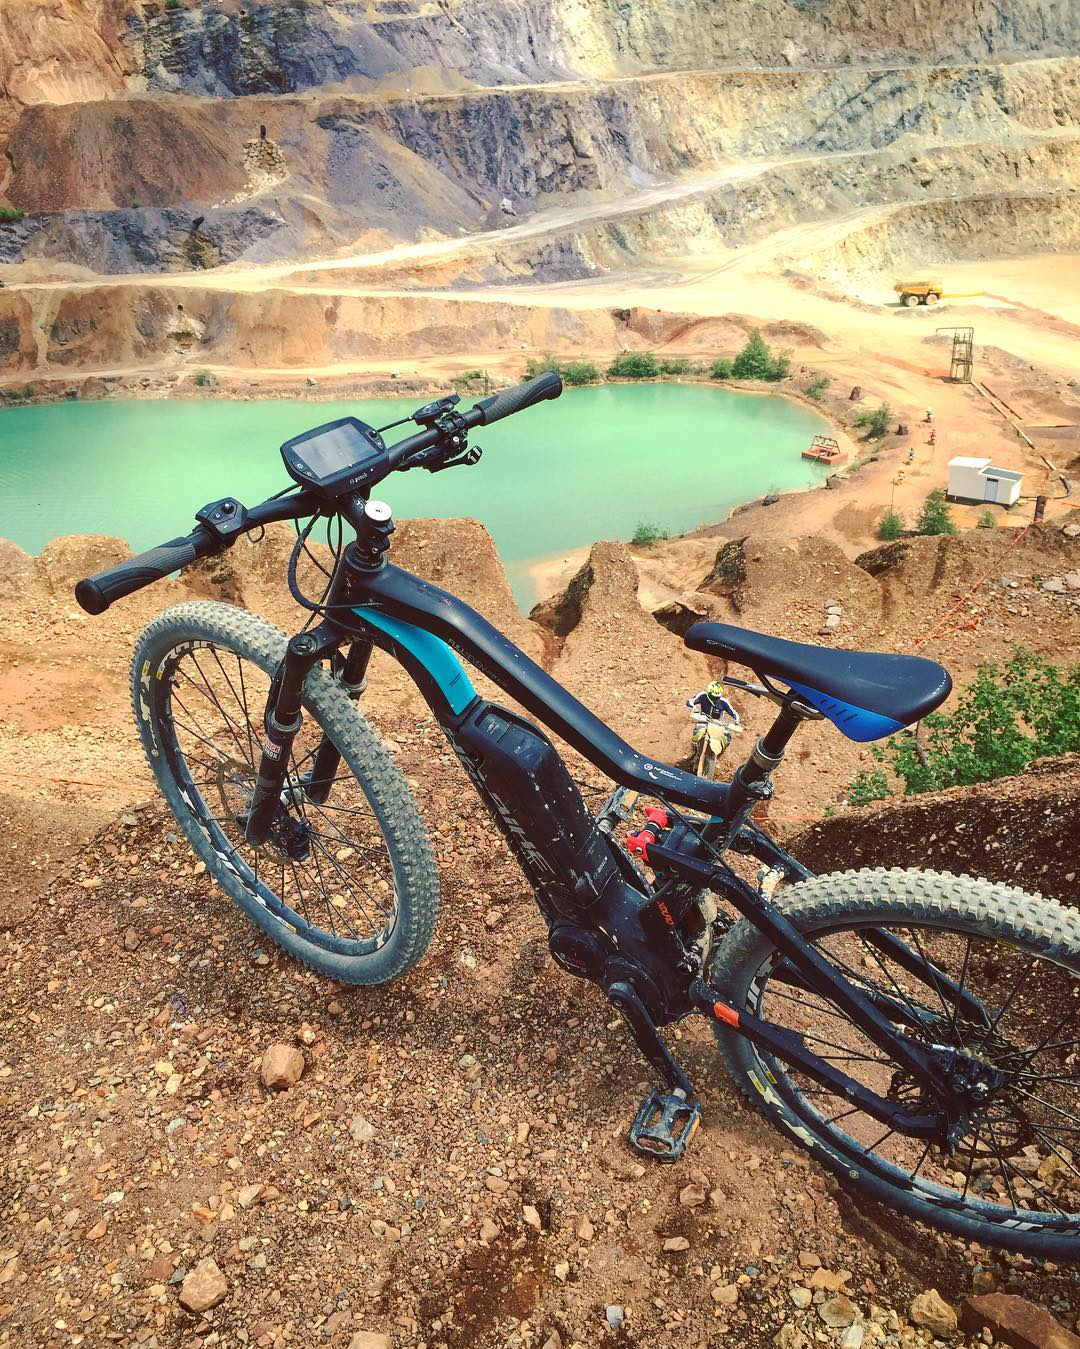 Good times at #Erzbergrodeo with the  #FULLSEVEN Carbon RX! #Haibike #xduro #enduro